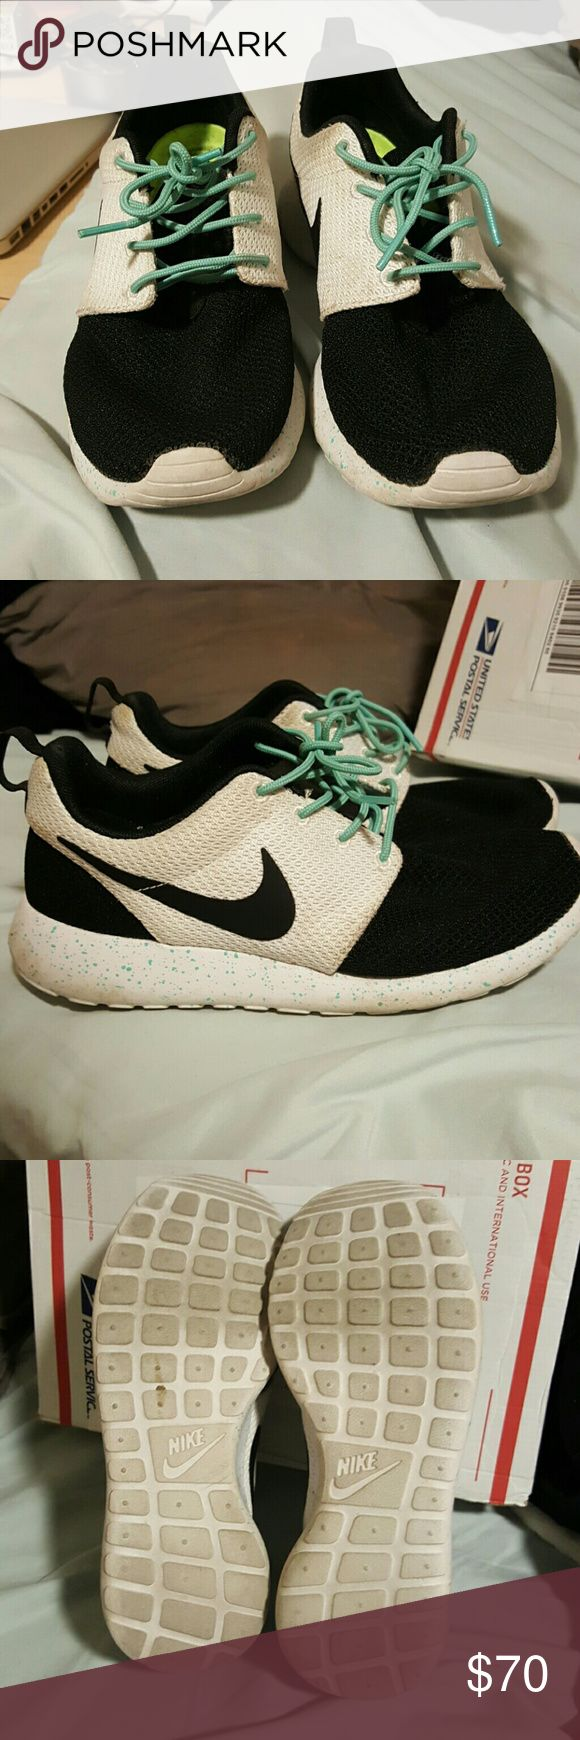 Gently used Customized roshe runs Gently used Customized roshe runs, black and white with Tiffany blue round laces and splatter detailing. Great shoes, I just never find myself wearing them anymore! Offers and questions welcome! Nike Shoes Athletic Shoes